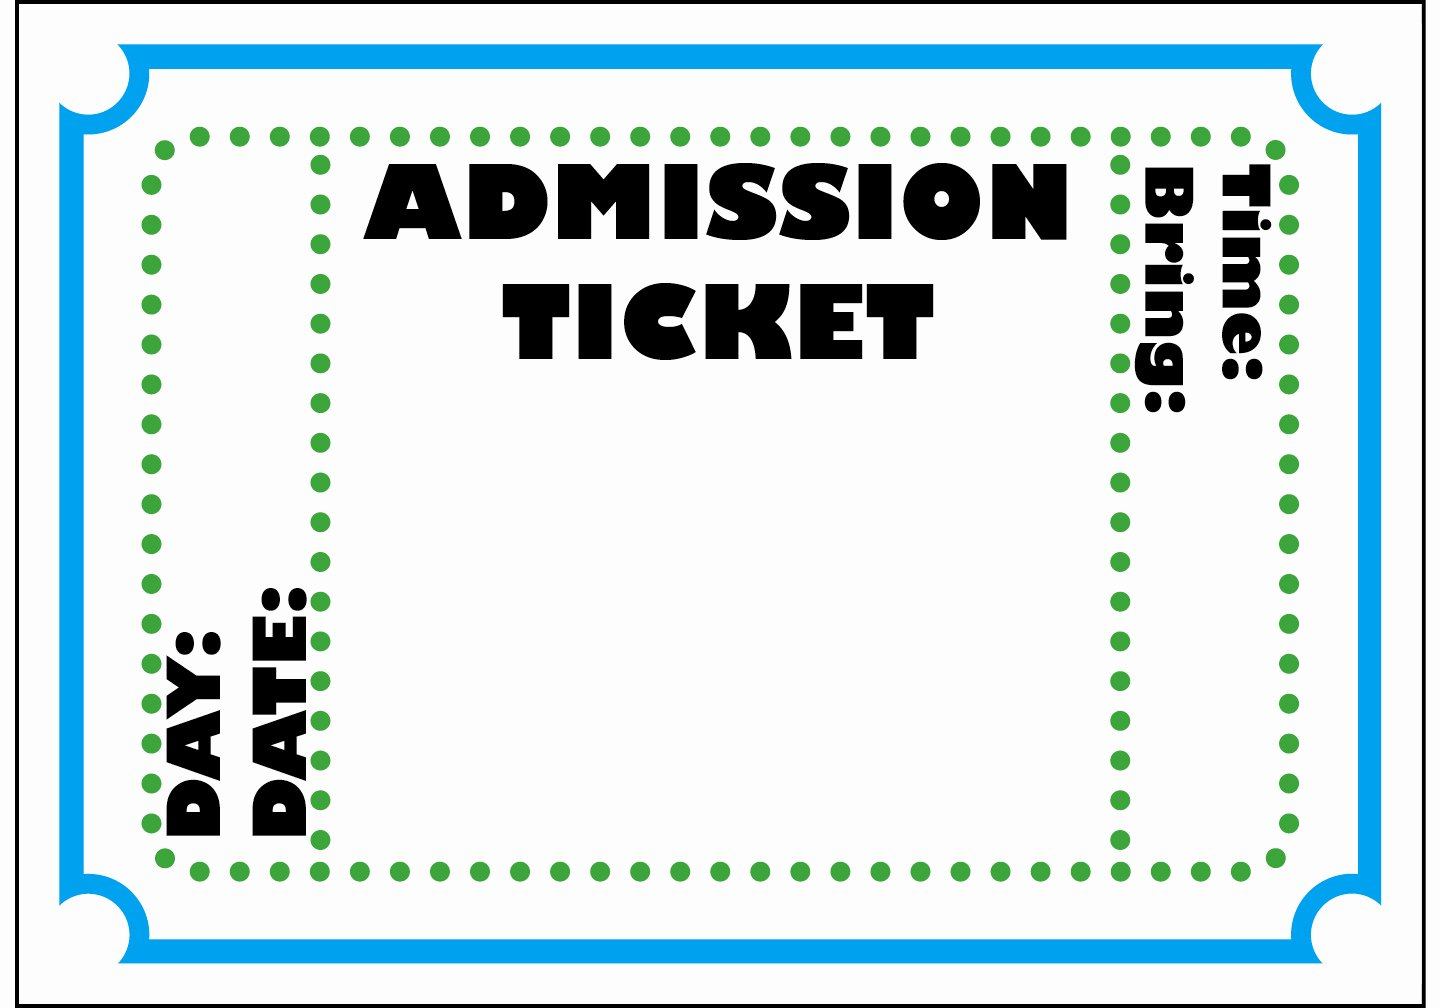 Free Printable Tickets Template New Free Printable Admit E Ticket Template Clipart Best